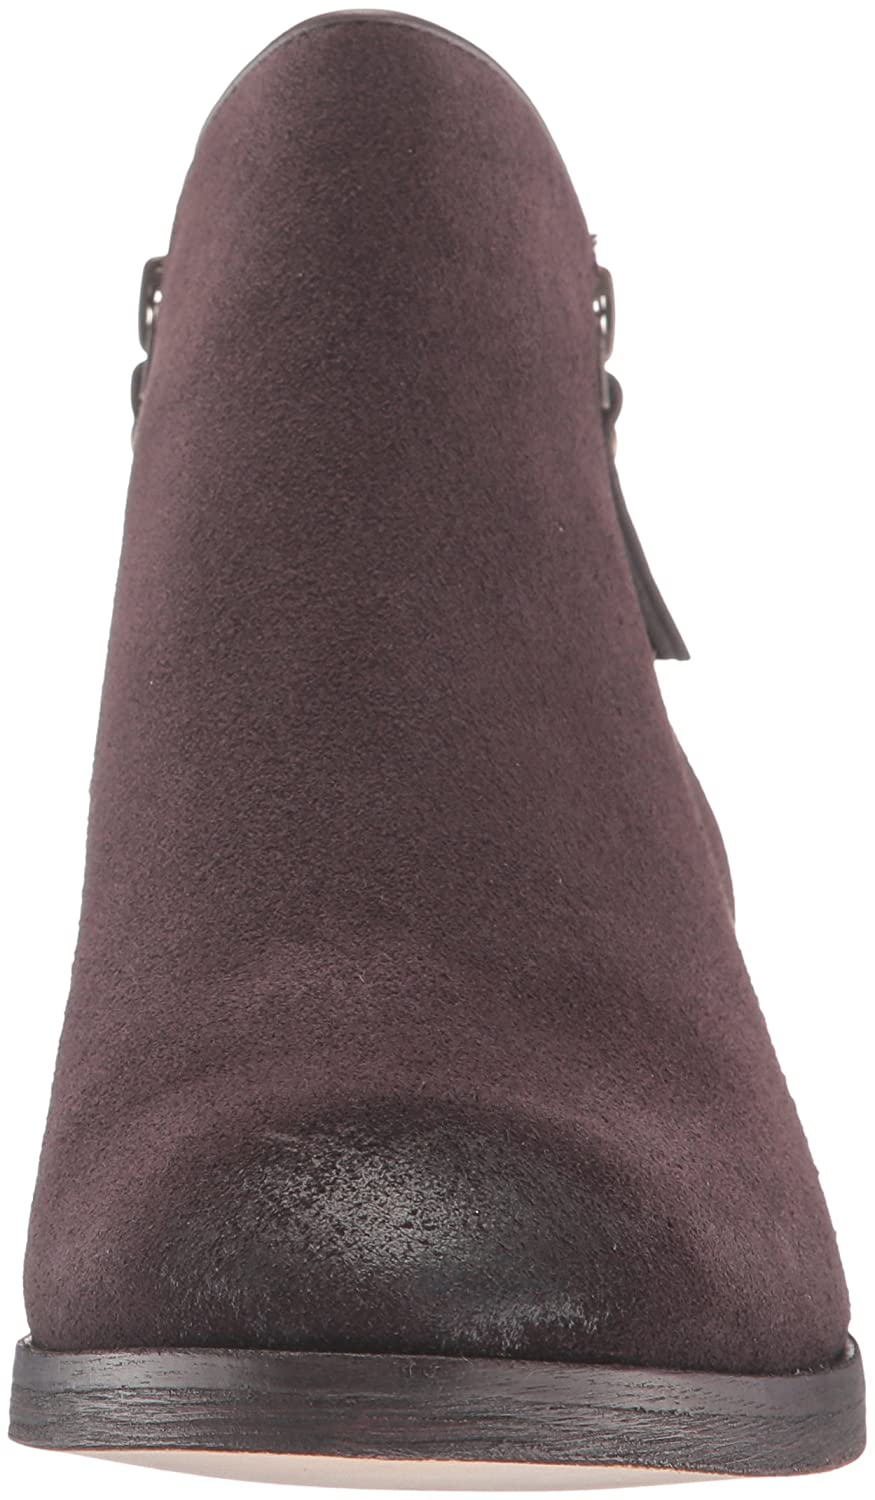 Cole Haan 6.5 Women's Hayes Flat Ankle Bootie B01FX6ZNY8 6.5 Haan B(M) US|Java Suede 54a7ec